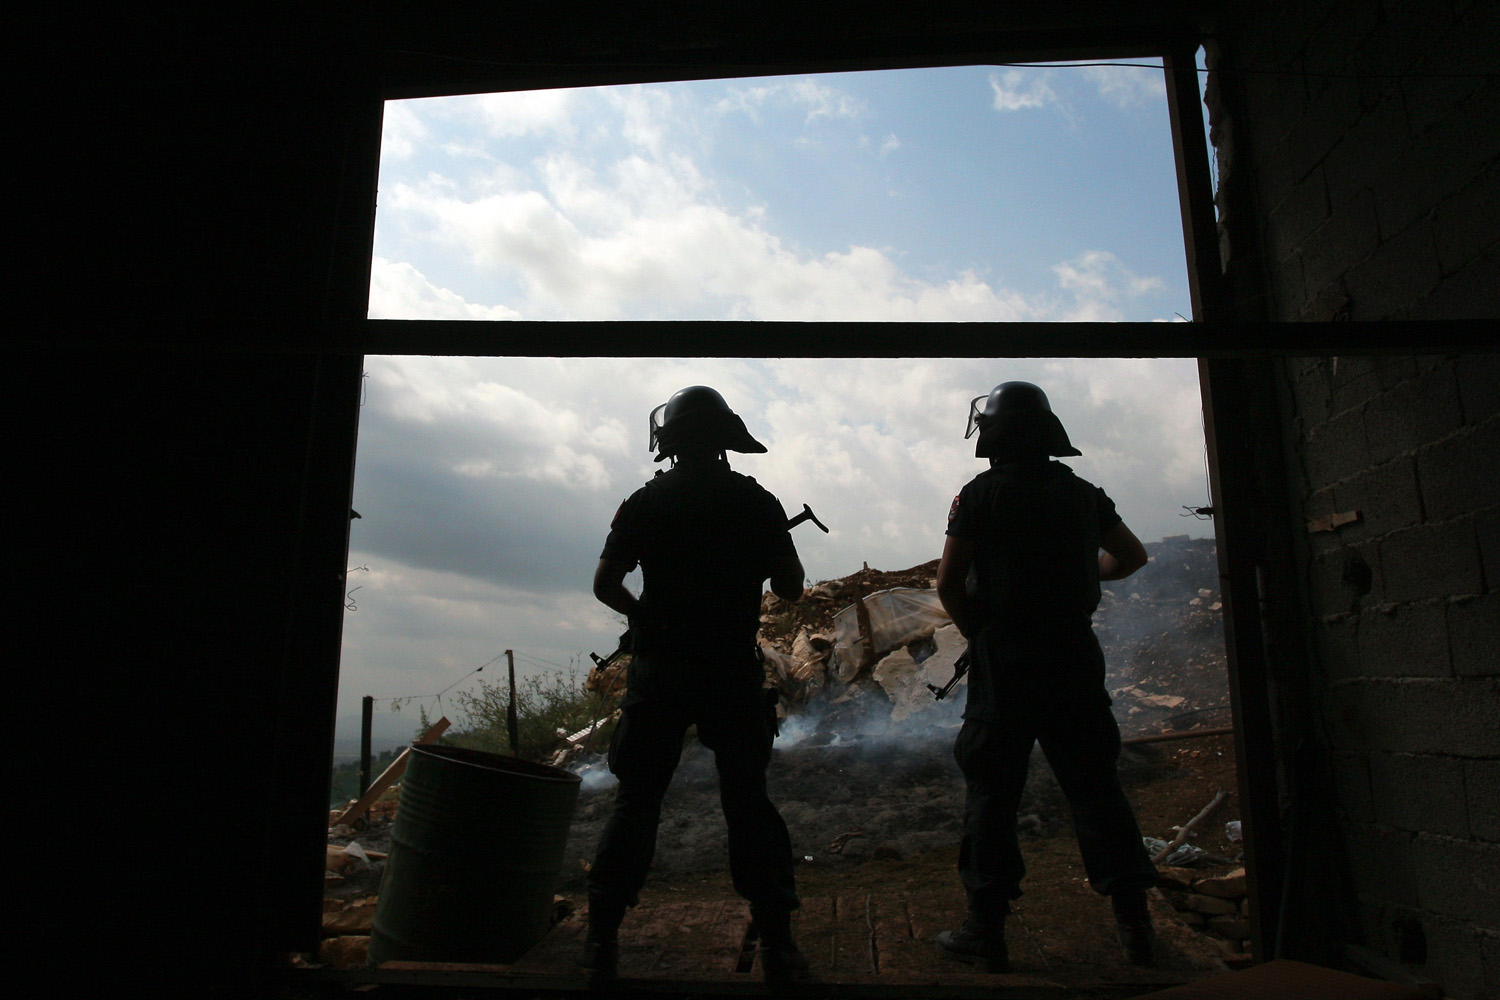 Jun. 18, 2014. Albanian police officers take control of a depot used for drug trafficking in Lazarat, a village known as Europe's cannabis capital, south of the Albanian capital Tirana.